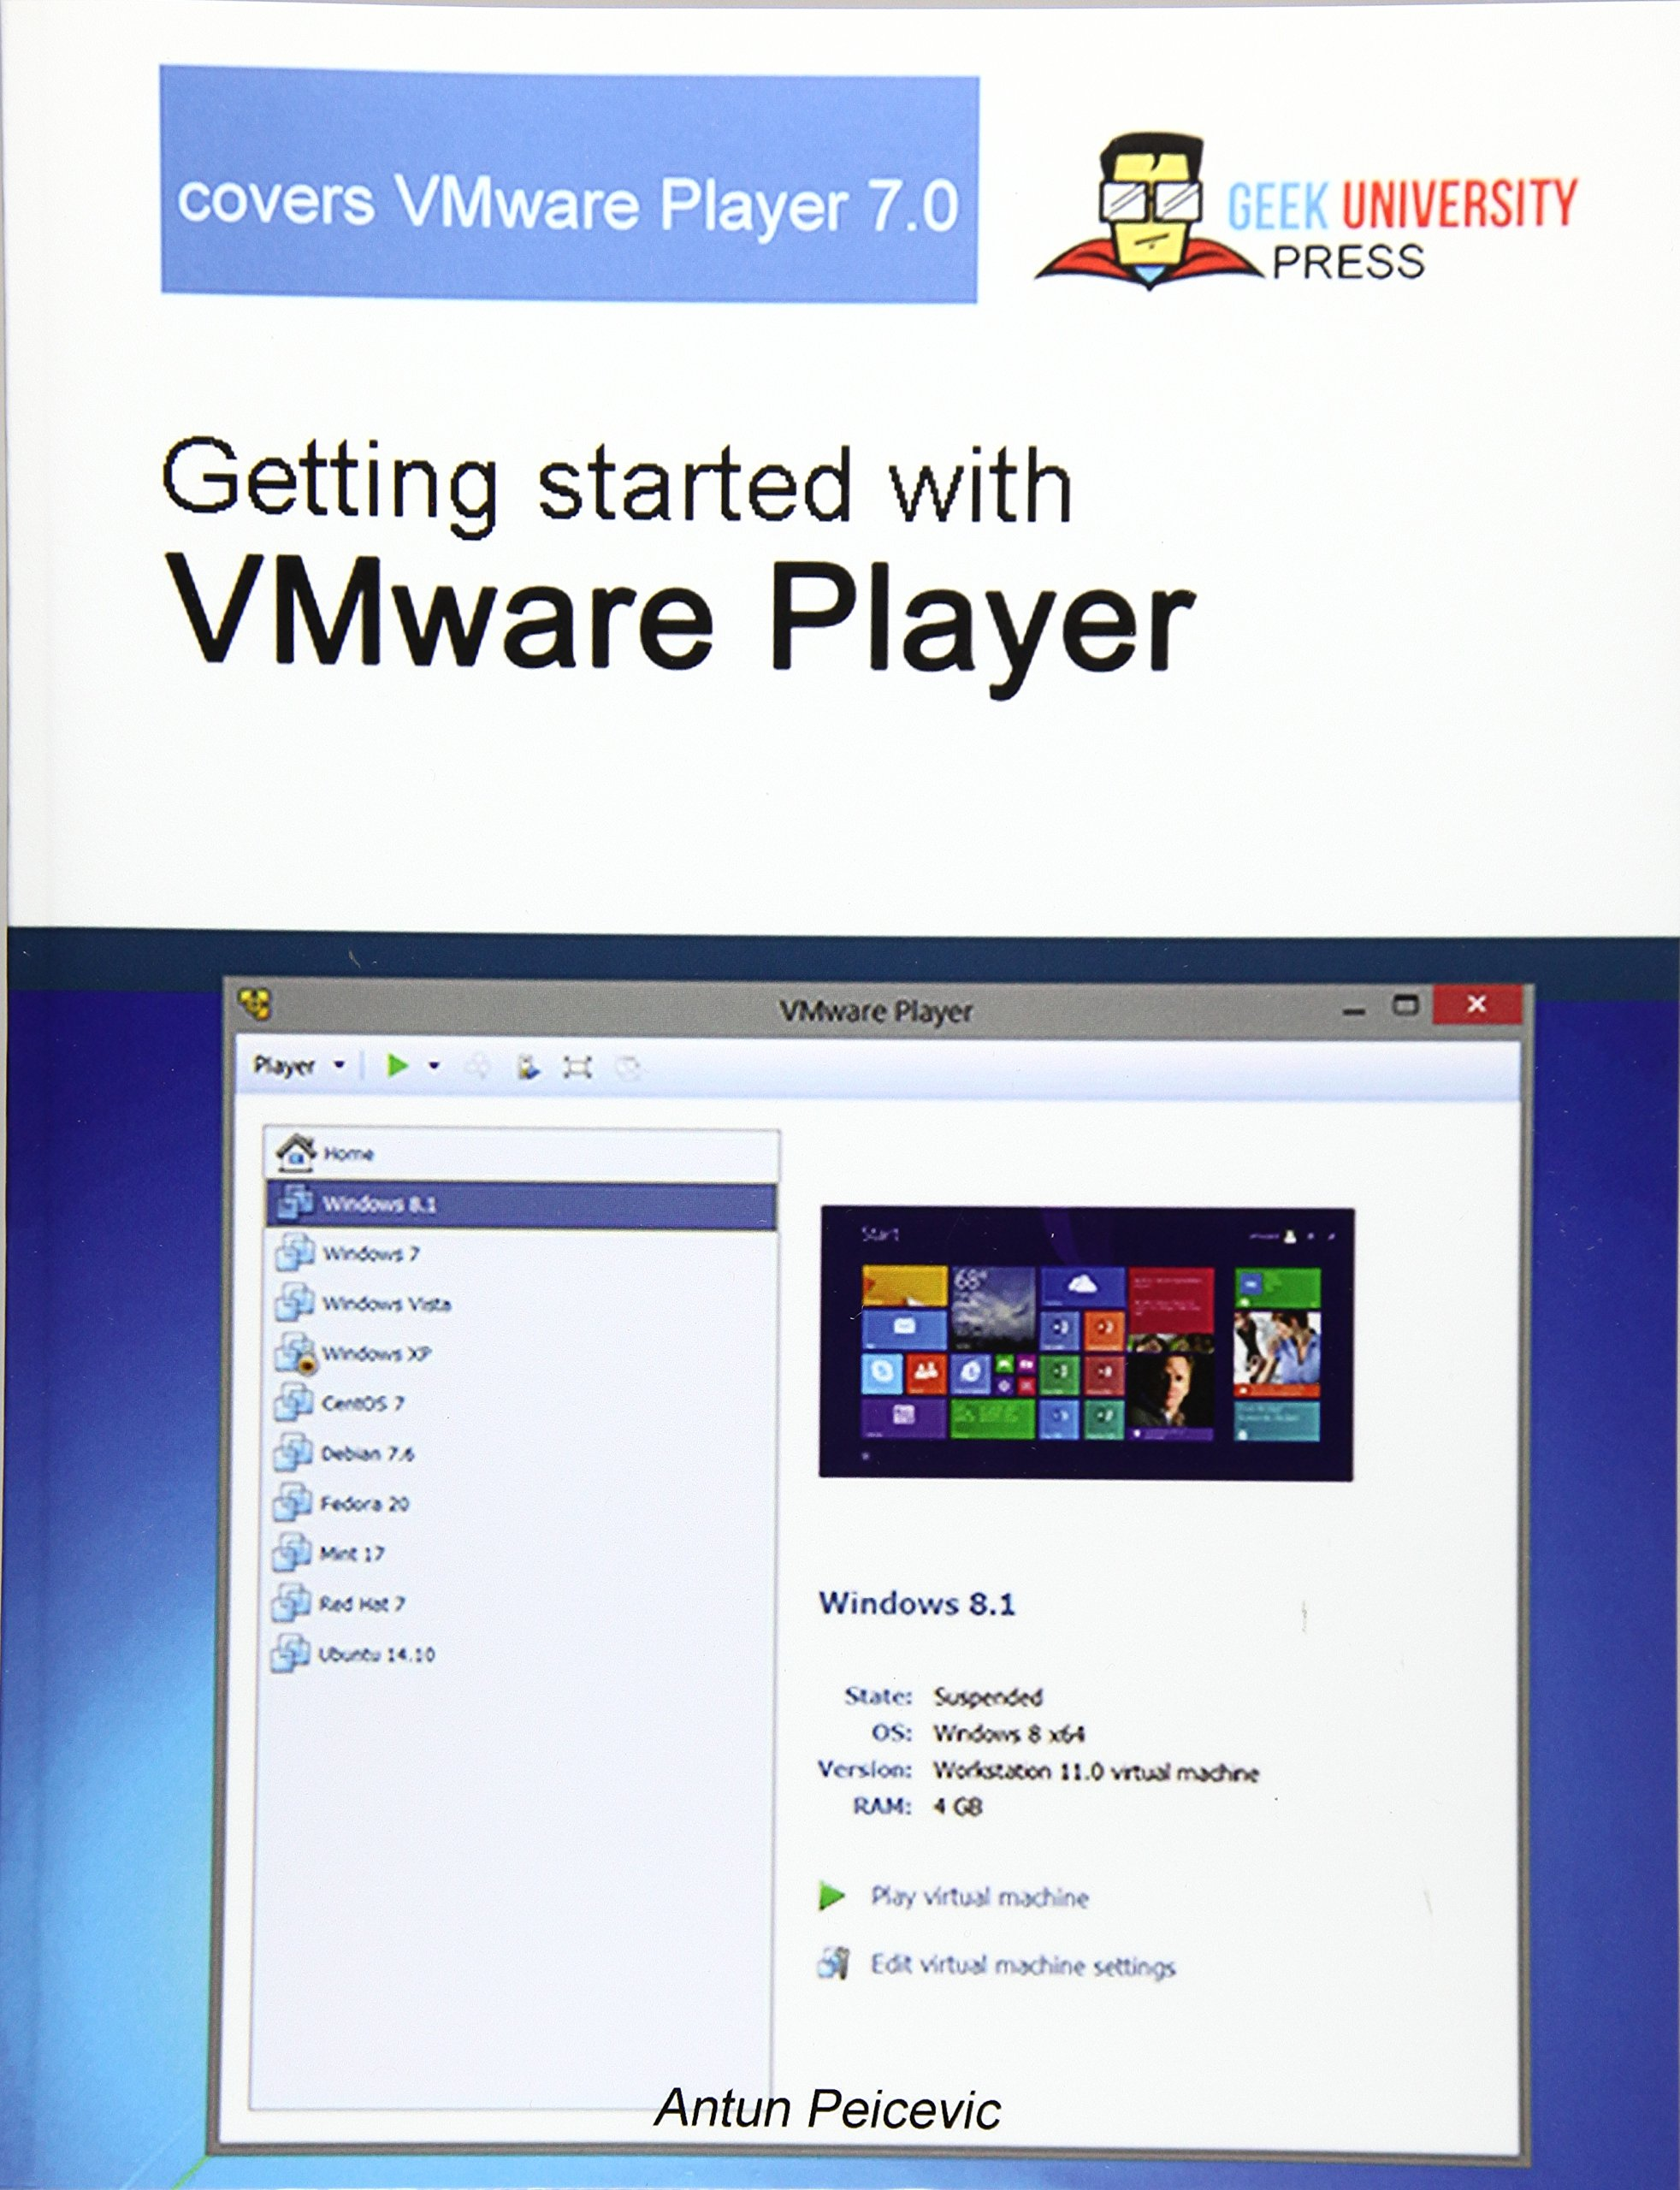 Getting started with VMware Player: Antun Peicevic